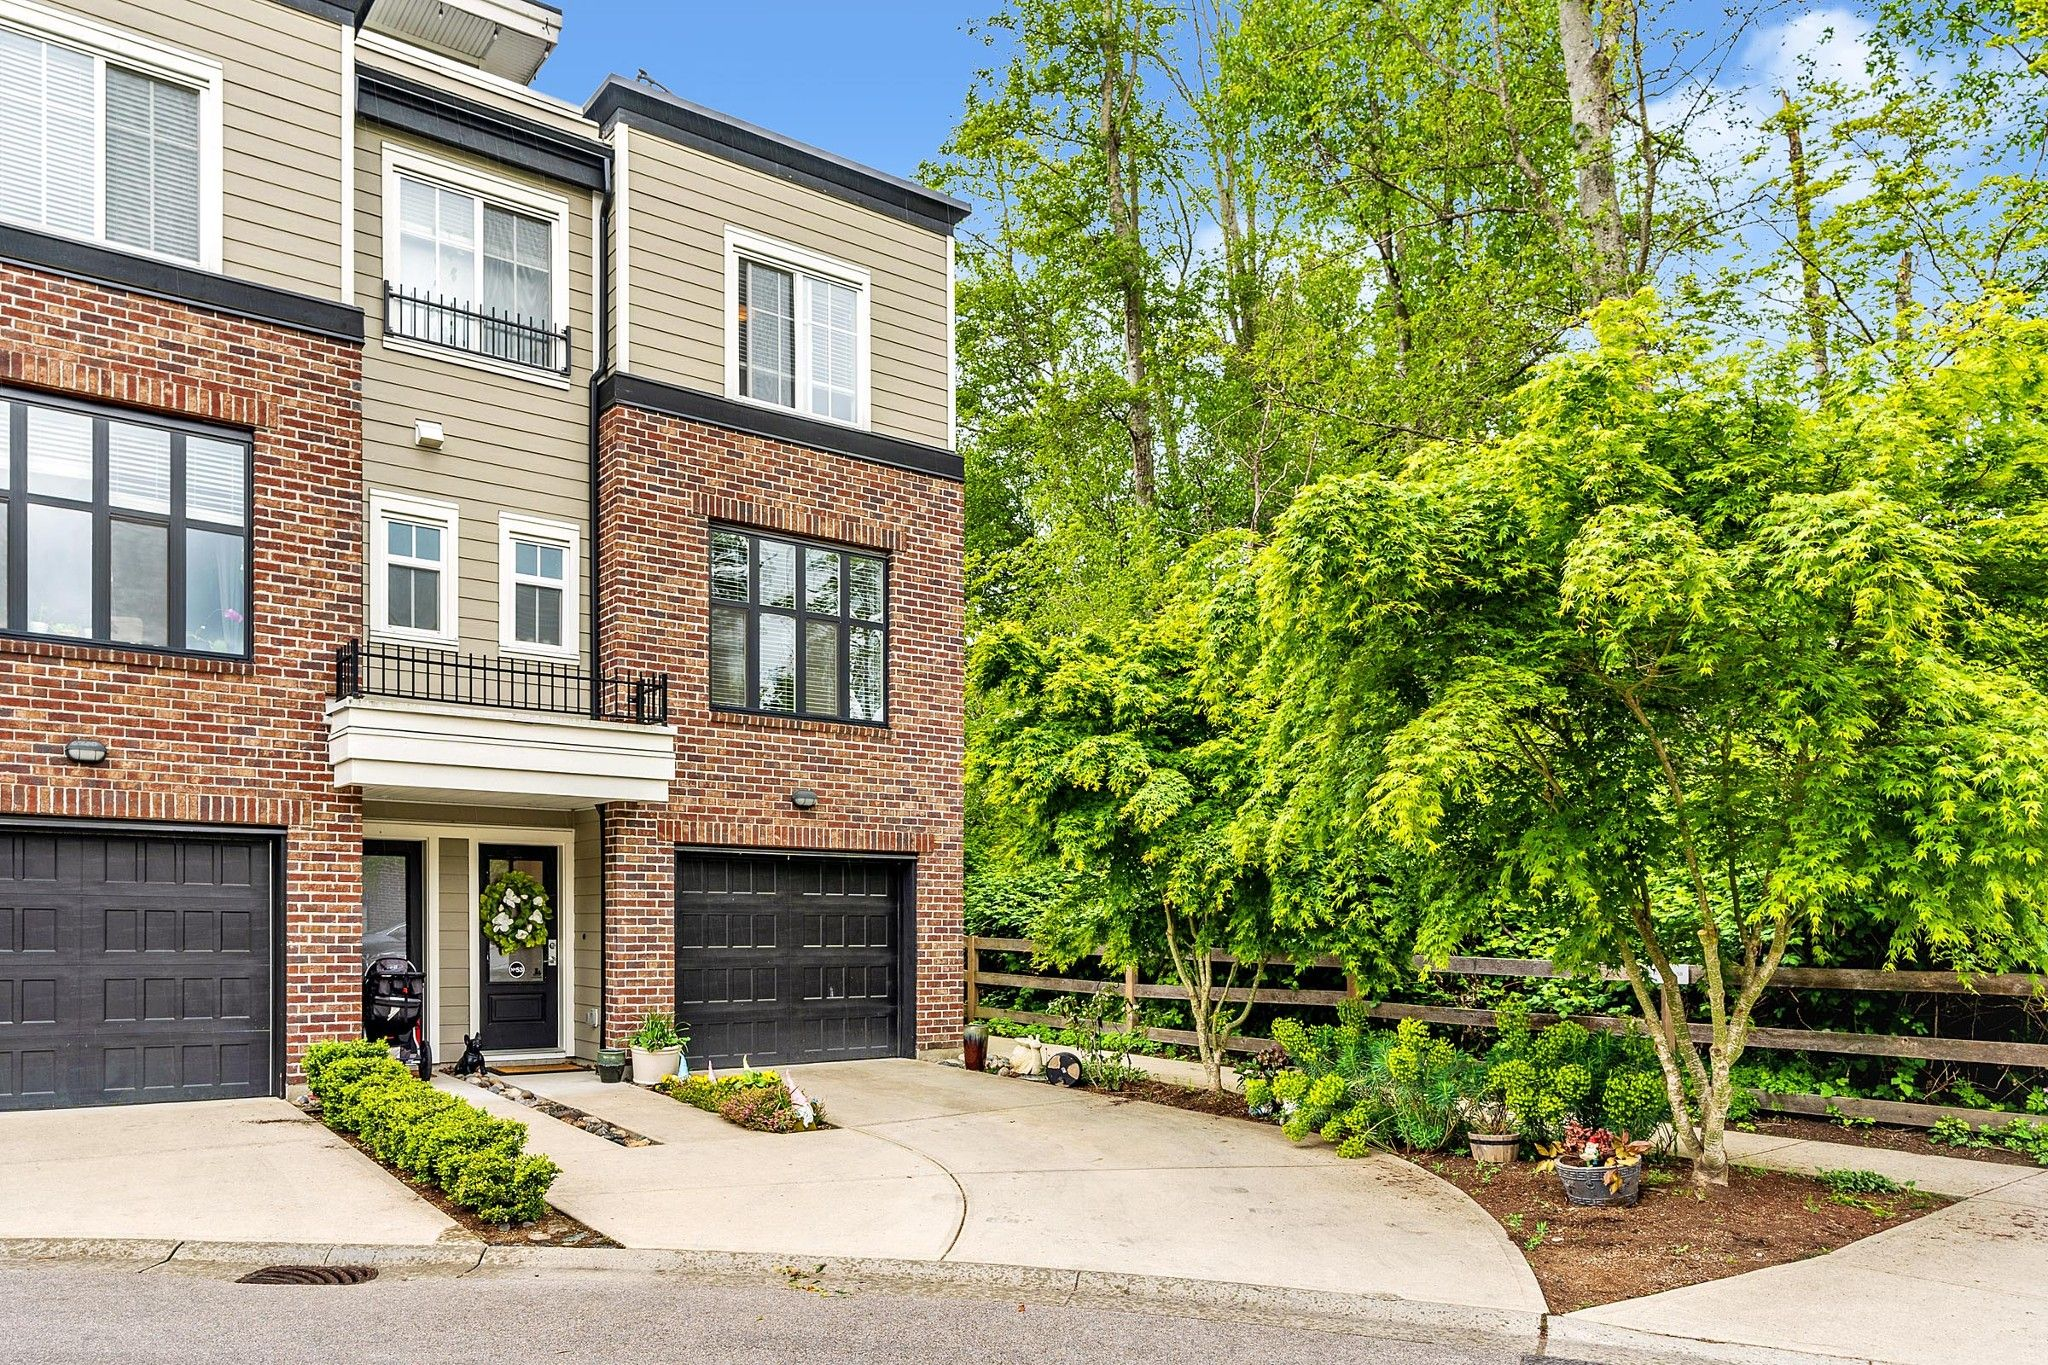 """Main Photo: 53 15588 32 Avenue in Surrey: Grandview Surrey Townhouse for sale in """"THE WOODS"""" (South Surrey White Rock)  : MLS®# R2577996"""